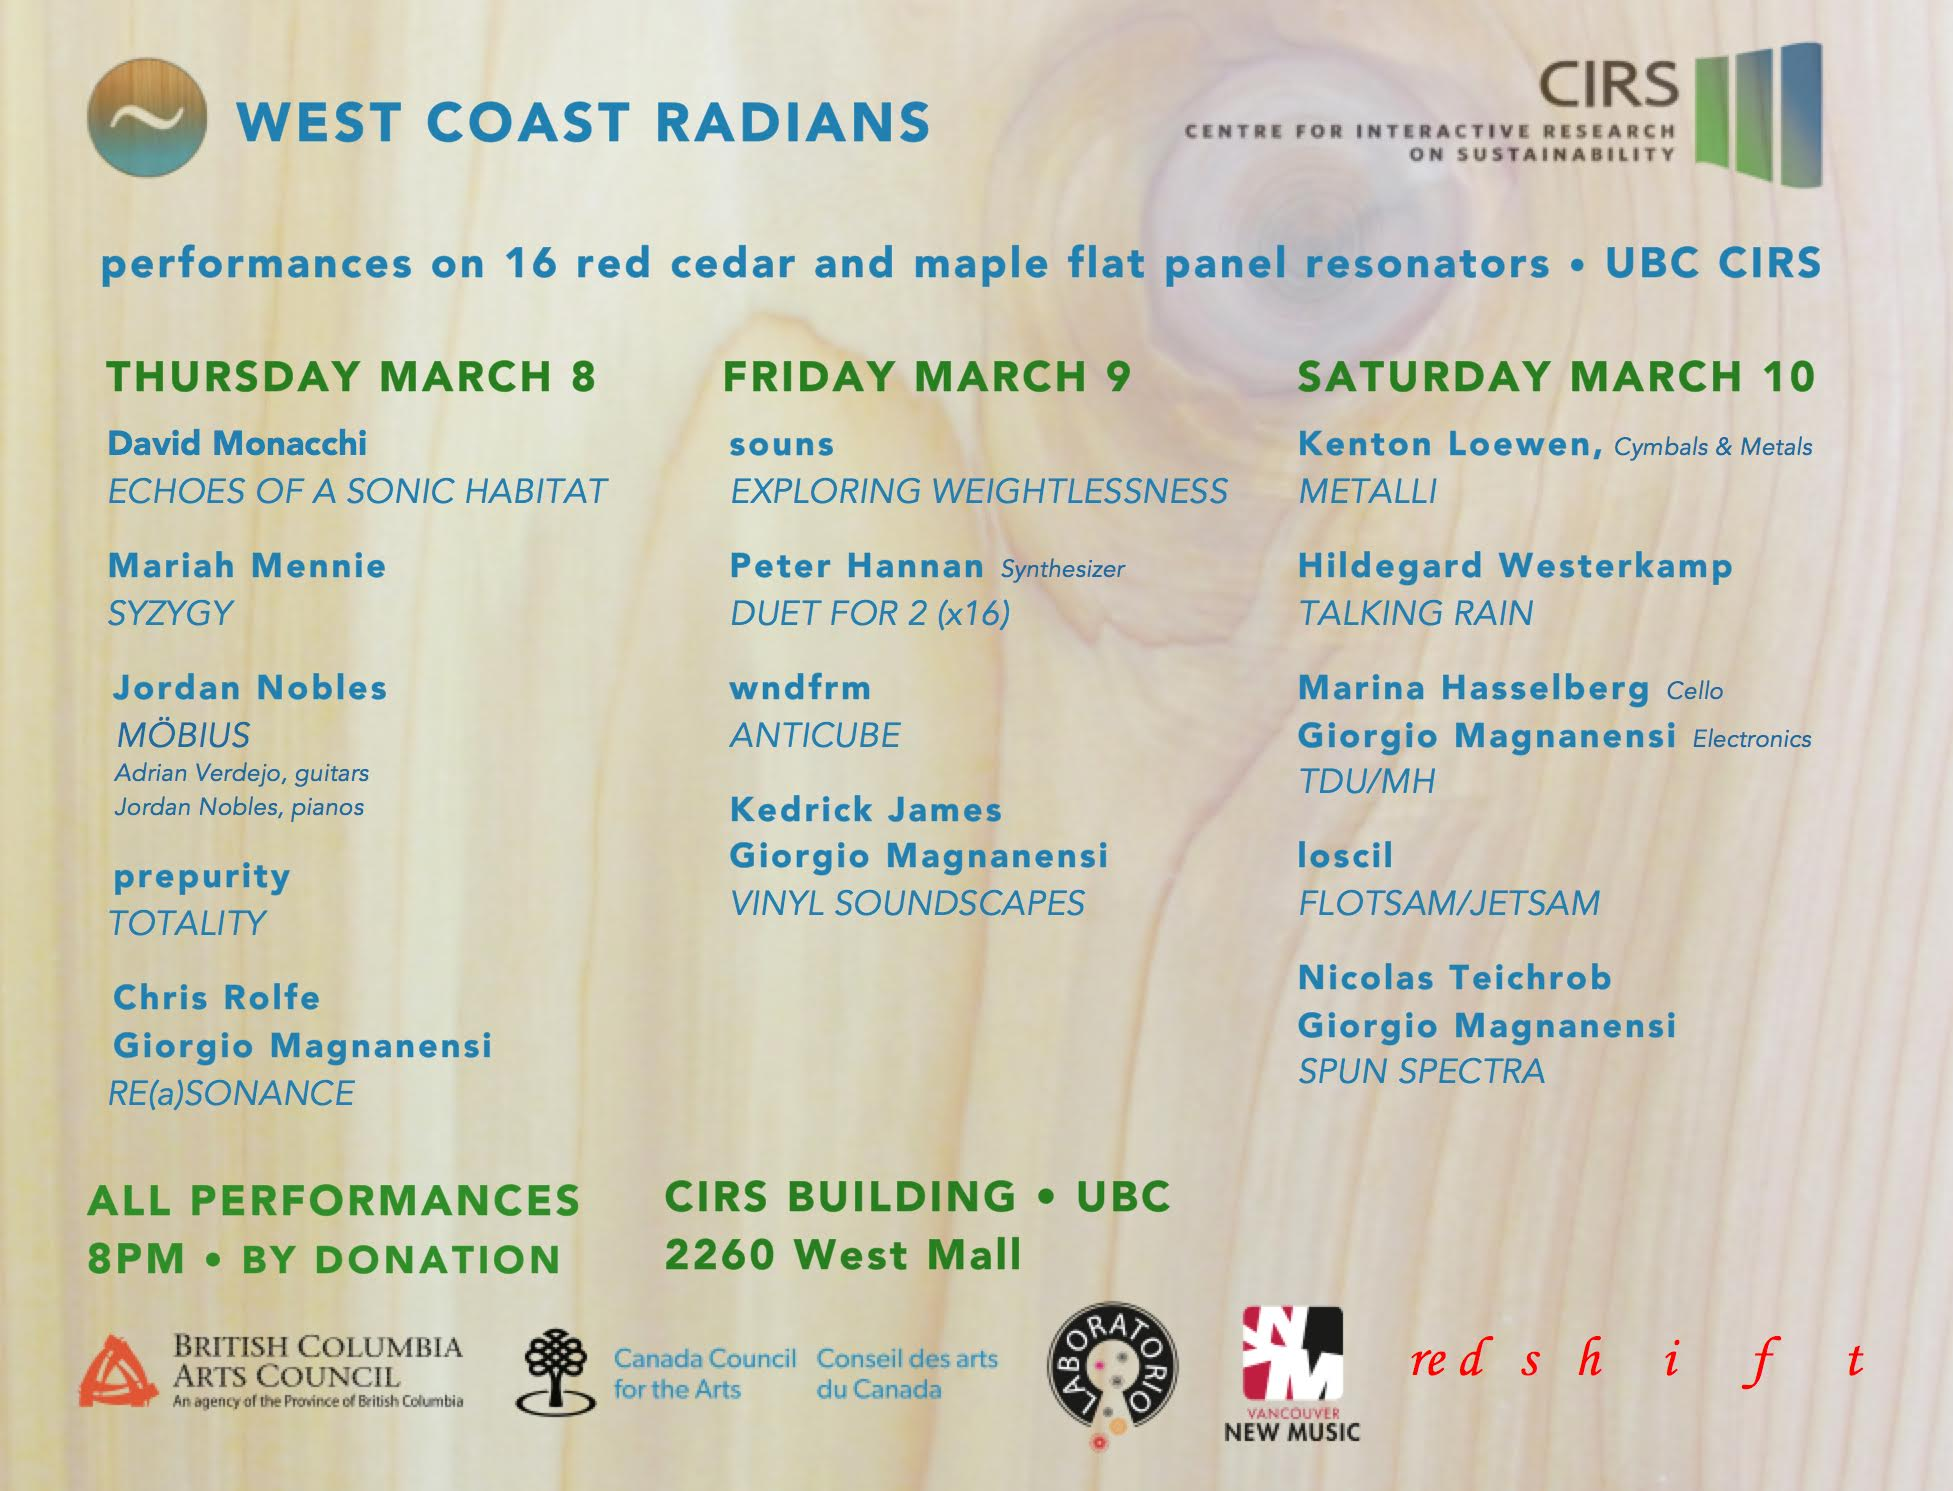 WEST COAST RADIANS FLYER.jpg